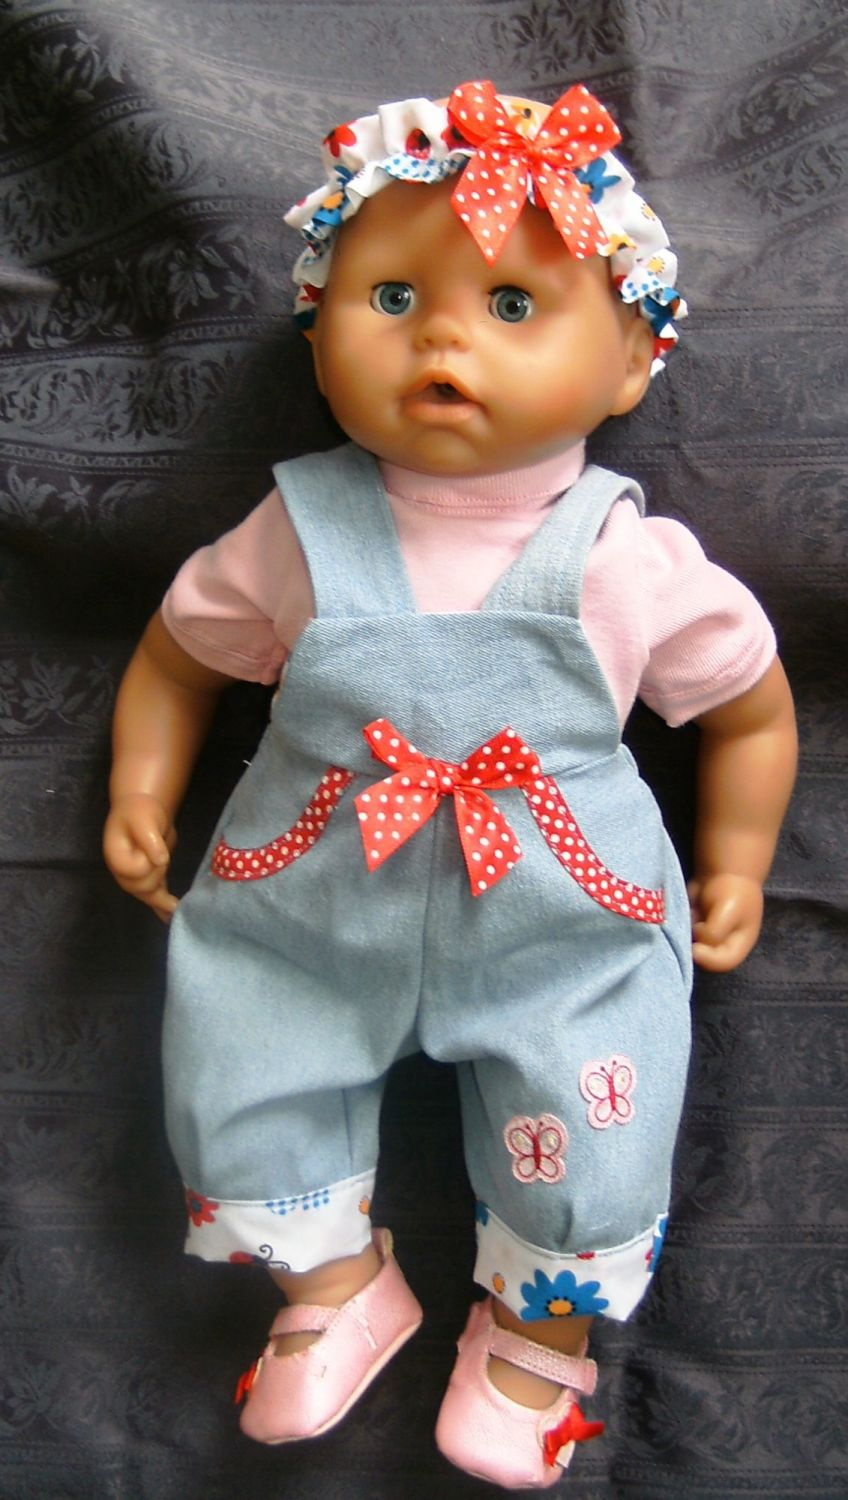 Doll's rompersdungaree set made to fit the 18 inch baby Annabell doll